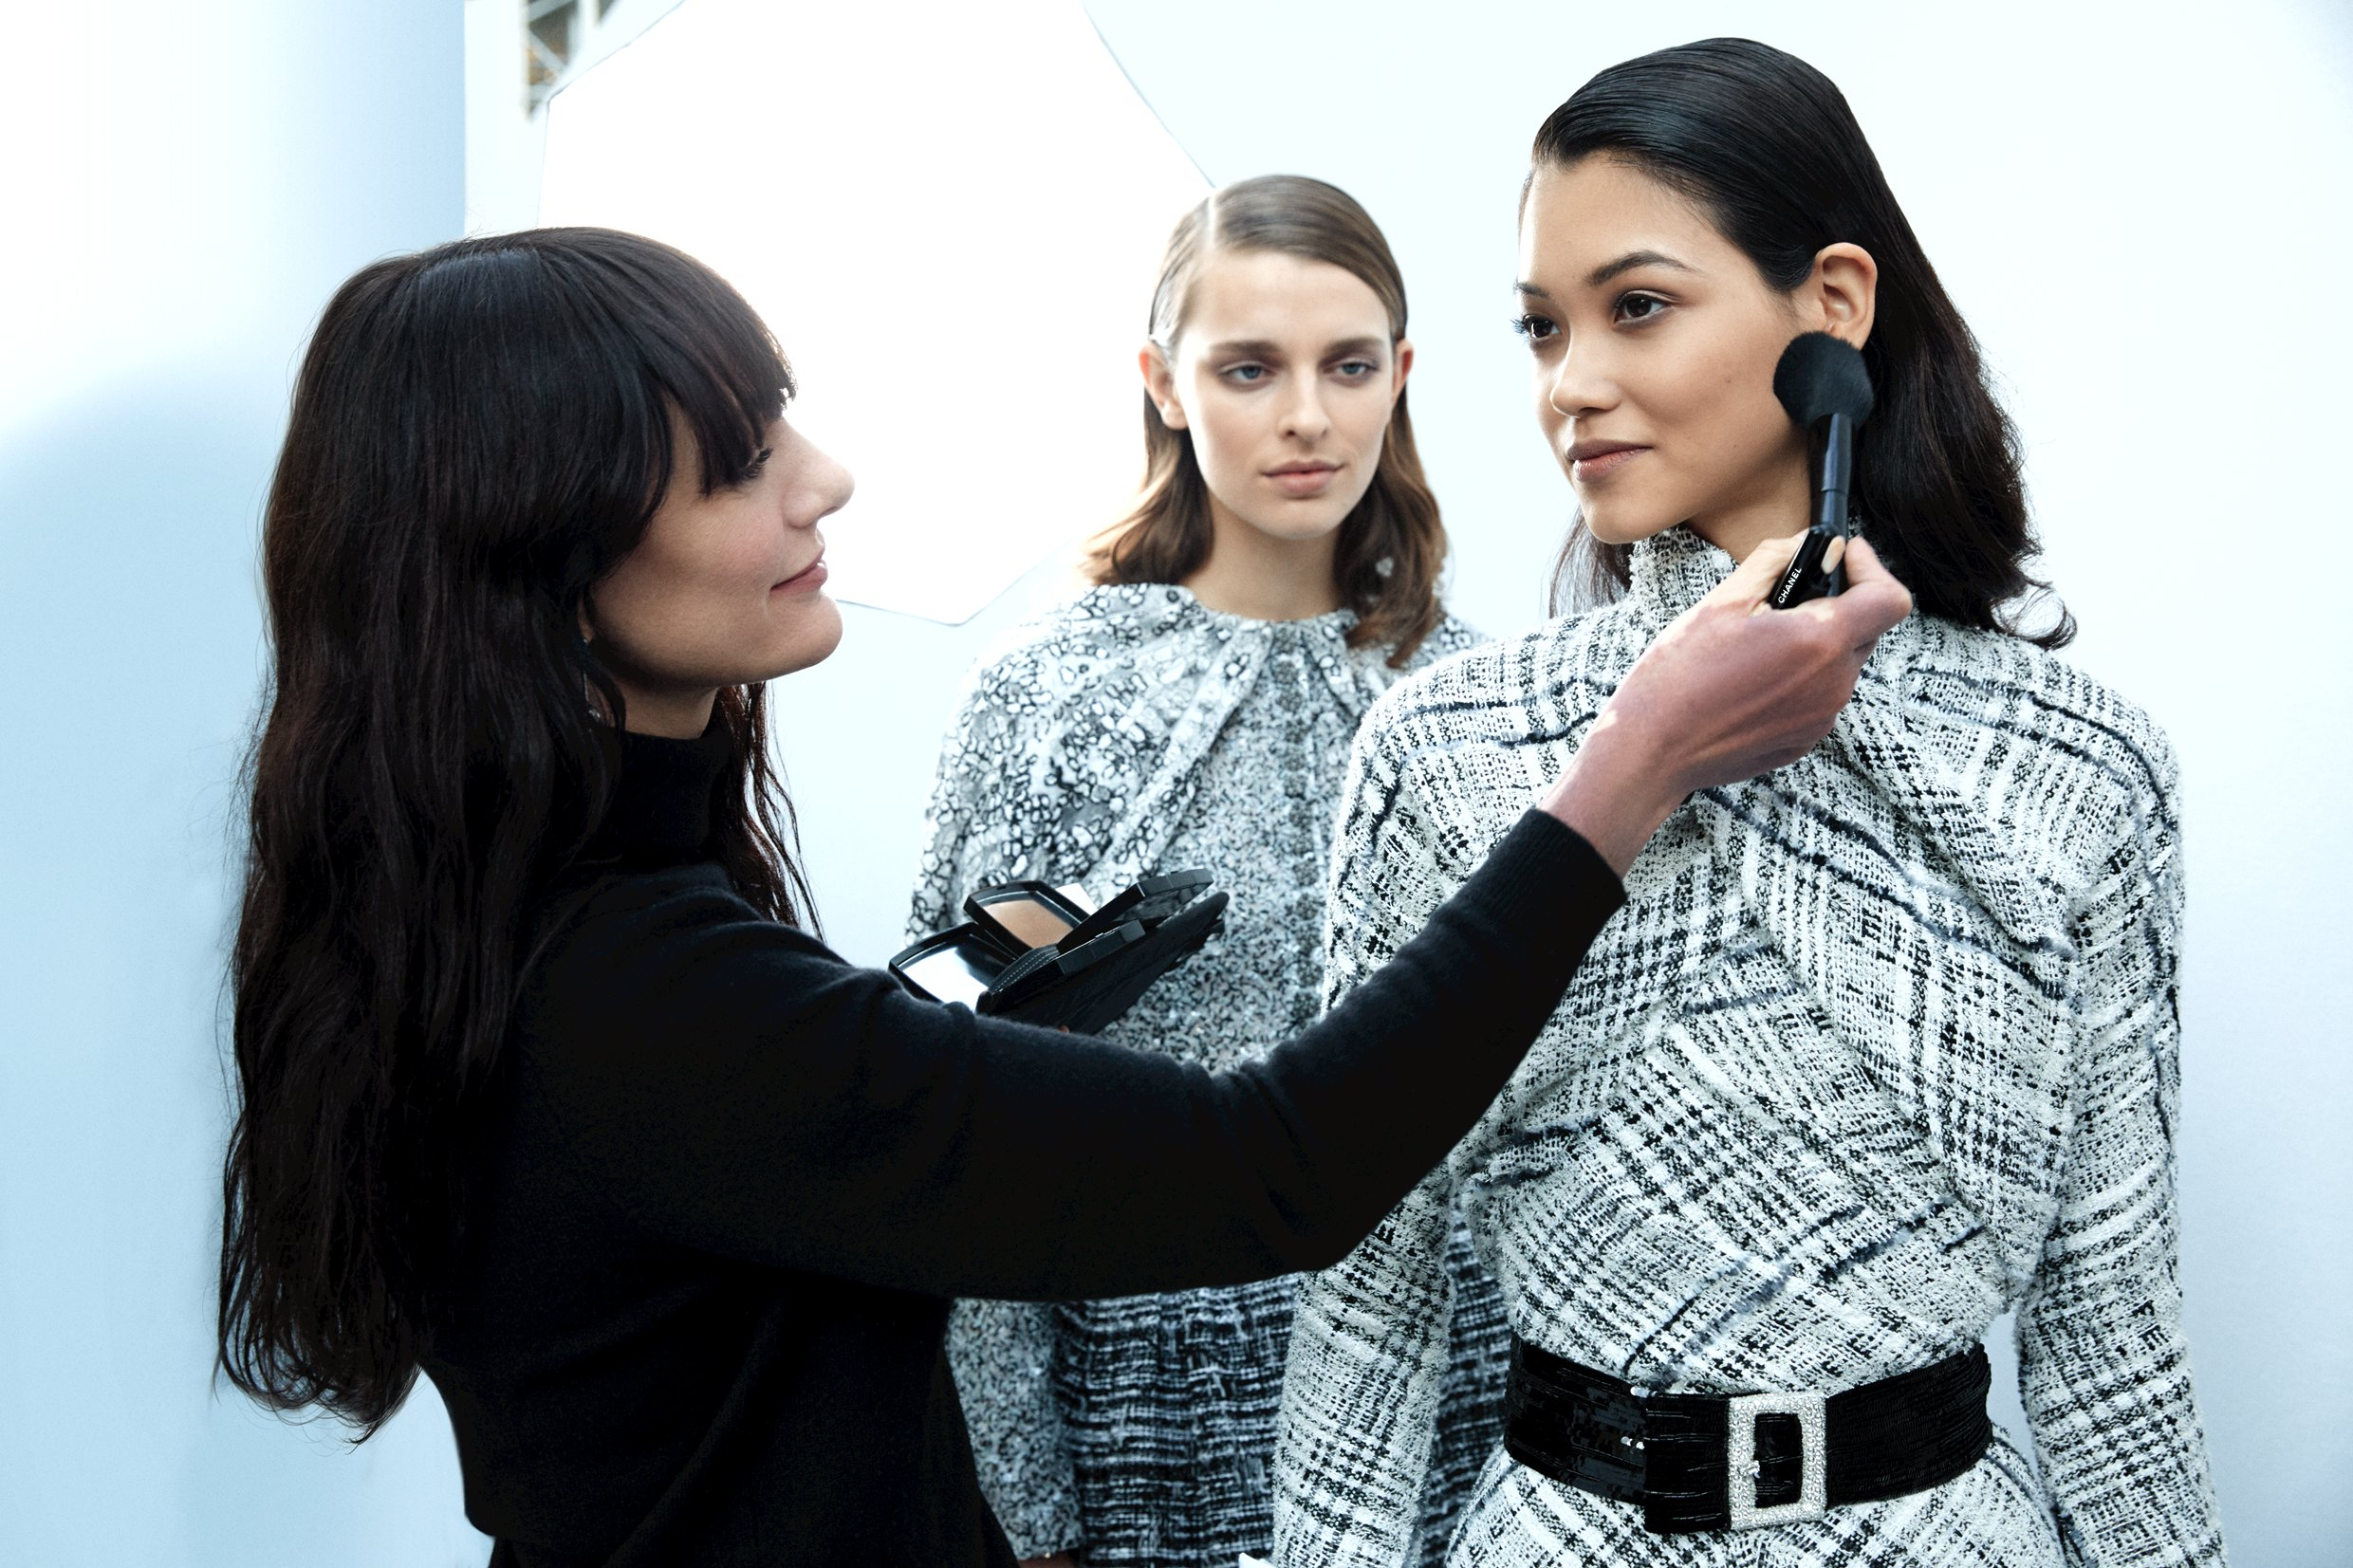 Lucia Pica nel backstage Chanel